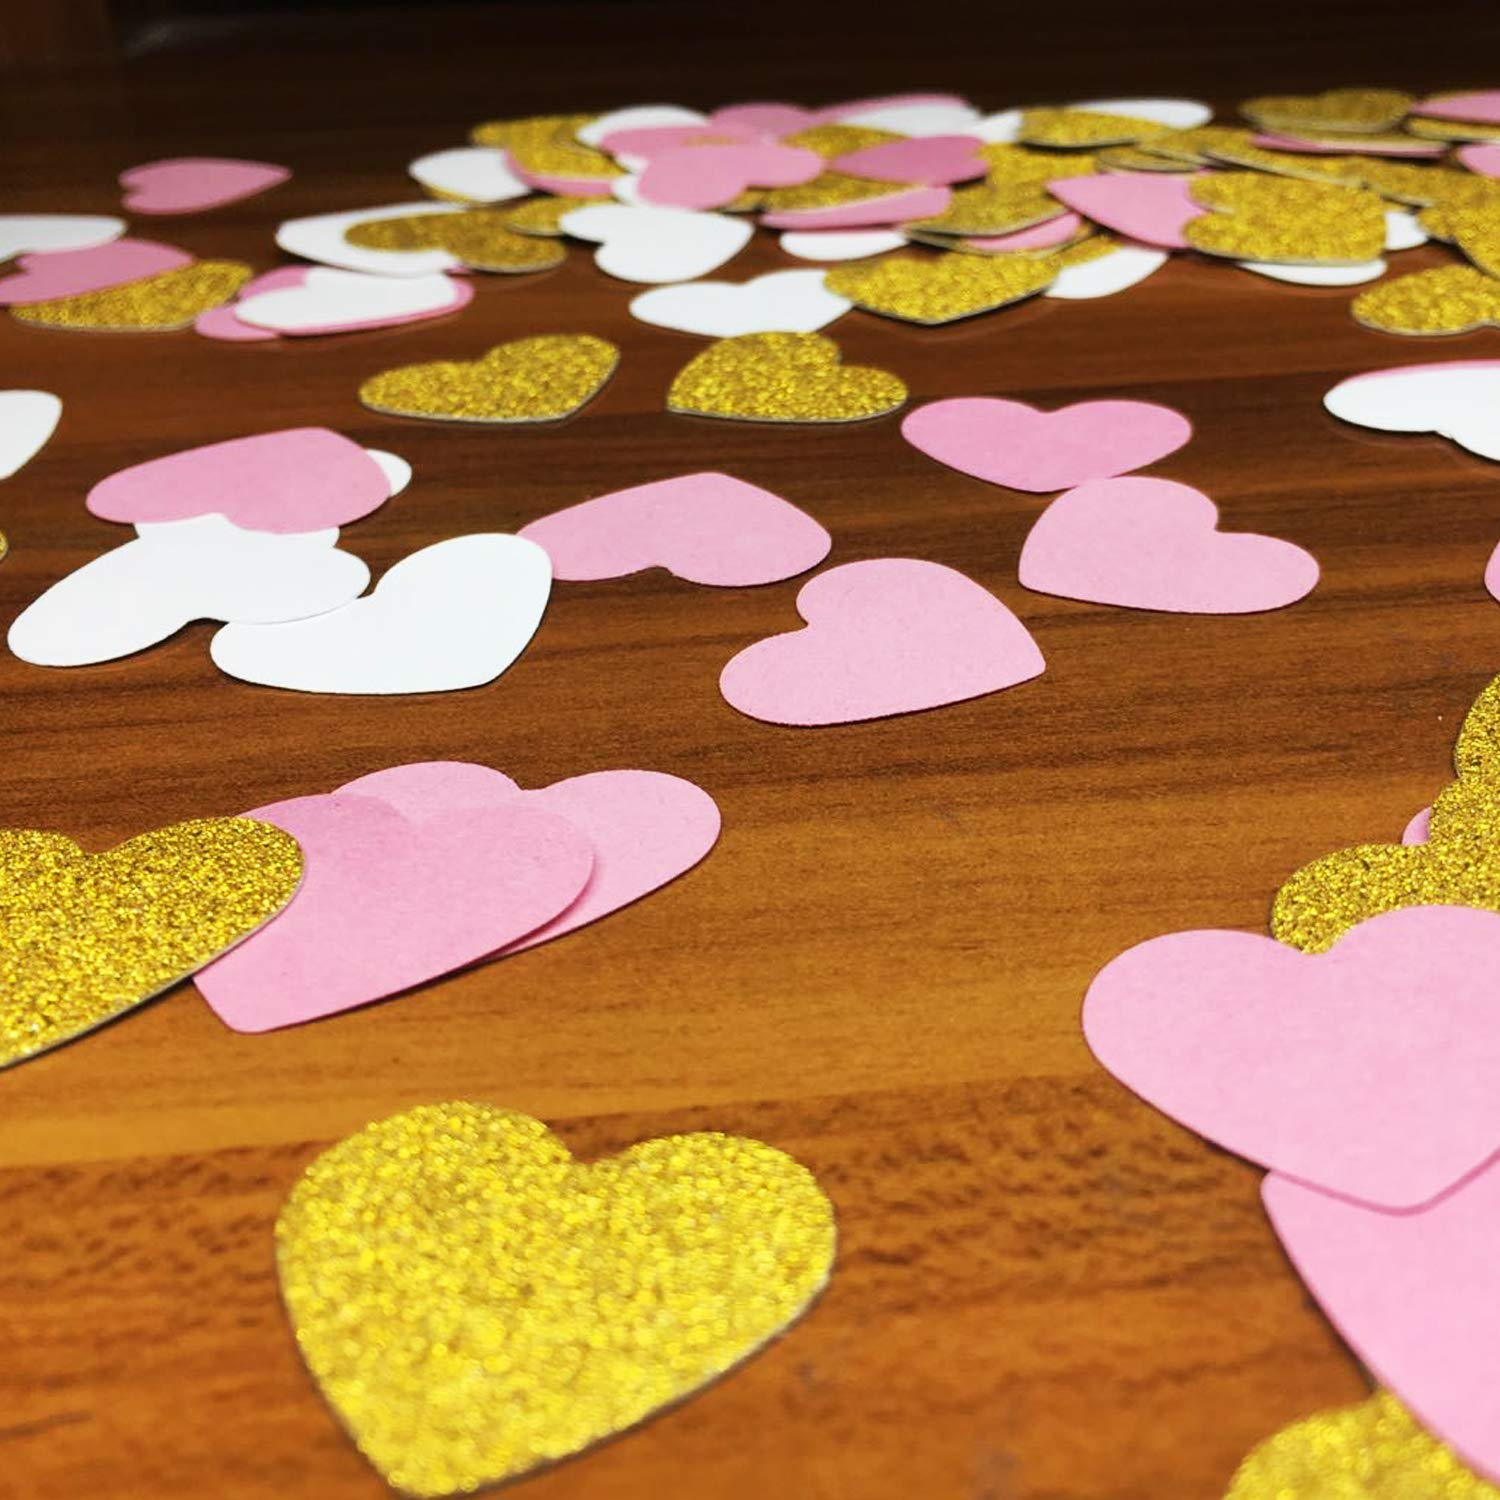 Gold, Pink and White, Heart 300 PCS Heart Paper Confetti Seasonsky Gold Pink and White Heart Confetti Table Scatter Paper Confetti for Bachelorette Decorations Wedding Party Supplies Baby Shower